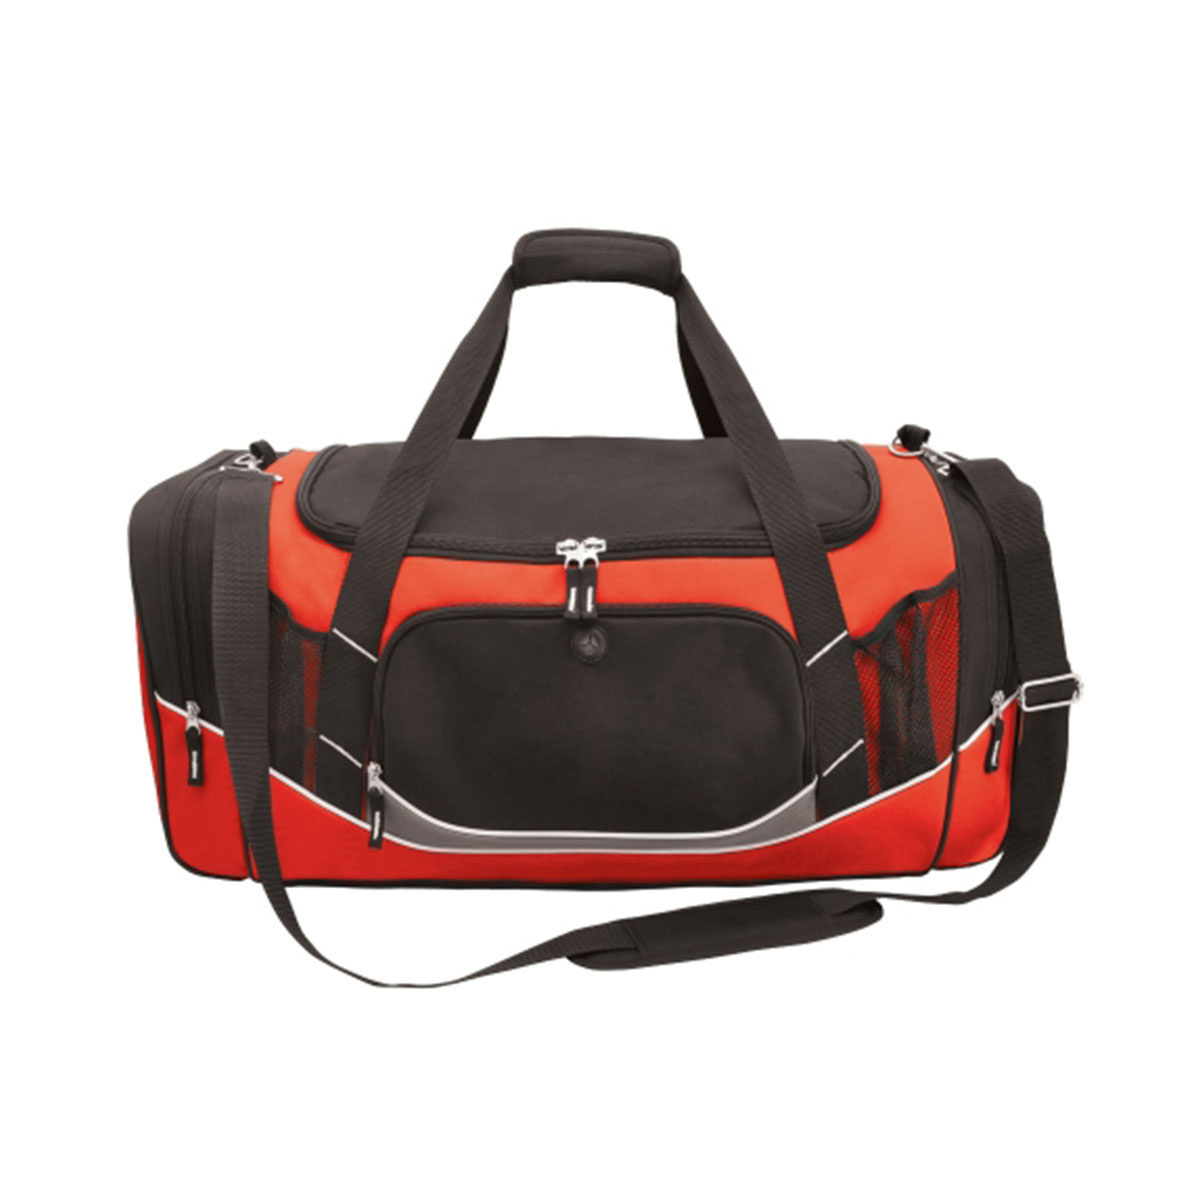 Atlantis Sports Bag-Black / Red / White / Charcoal